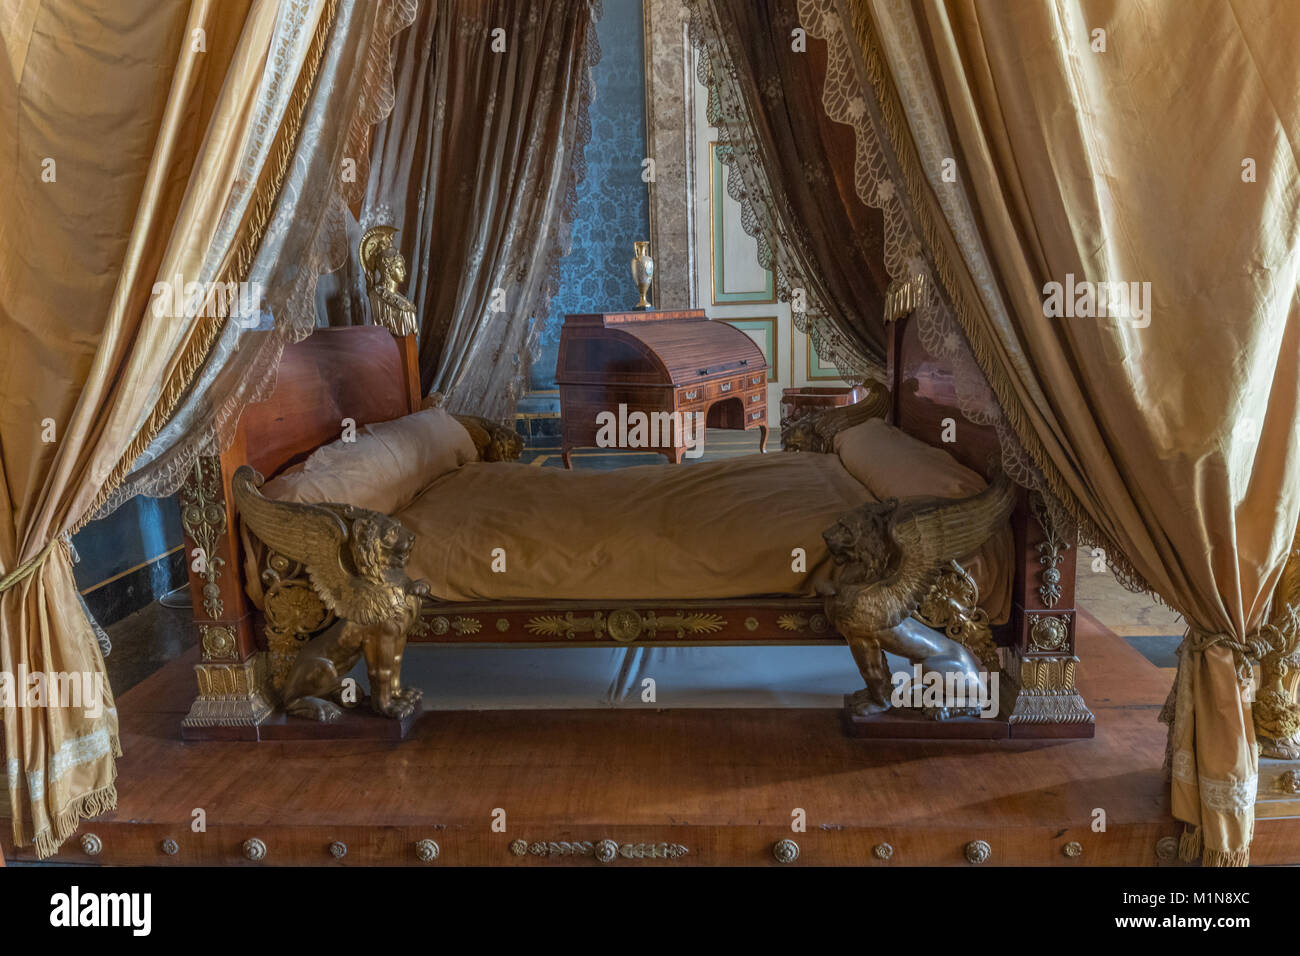 The apartments of the Royal Palace: The king's bedroom (Caserta Royal Palace) Stock Photo